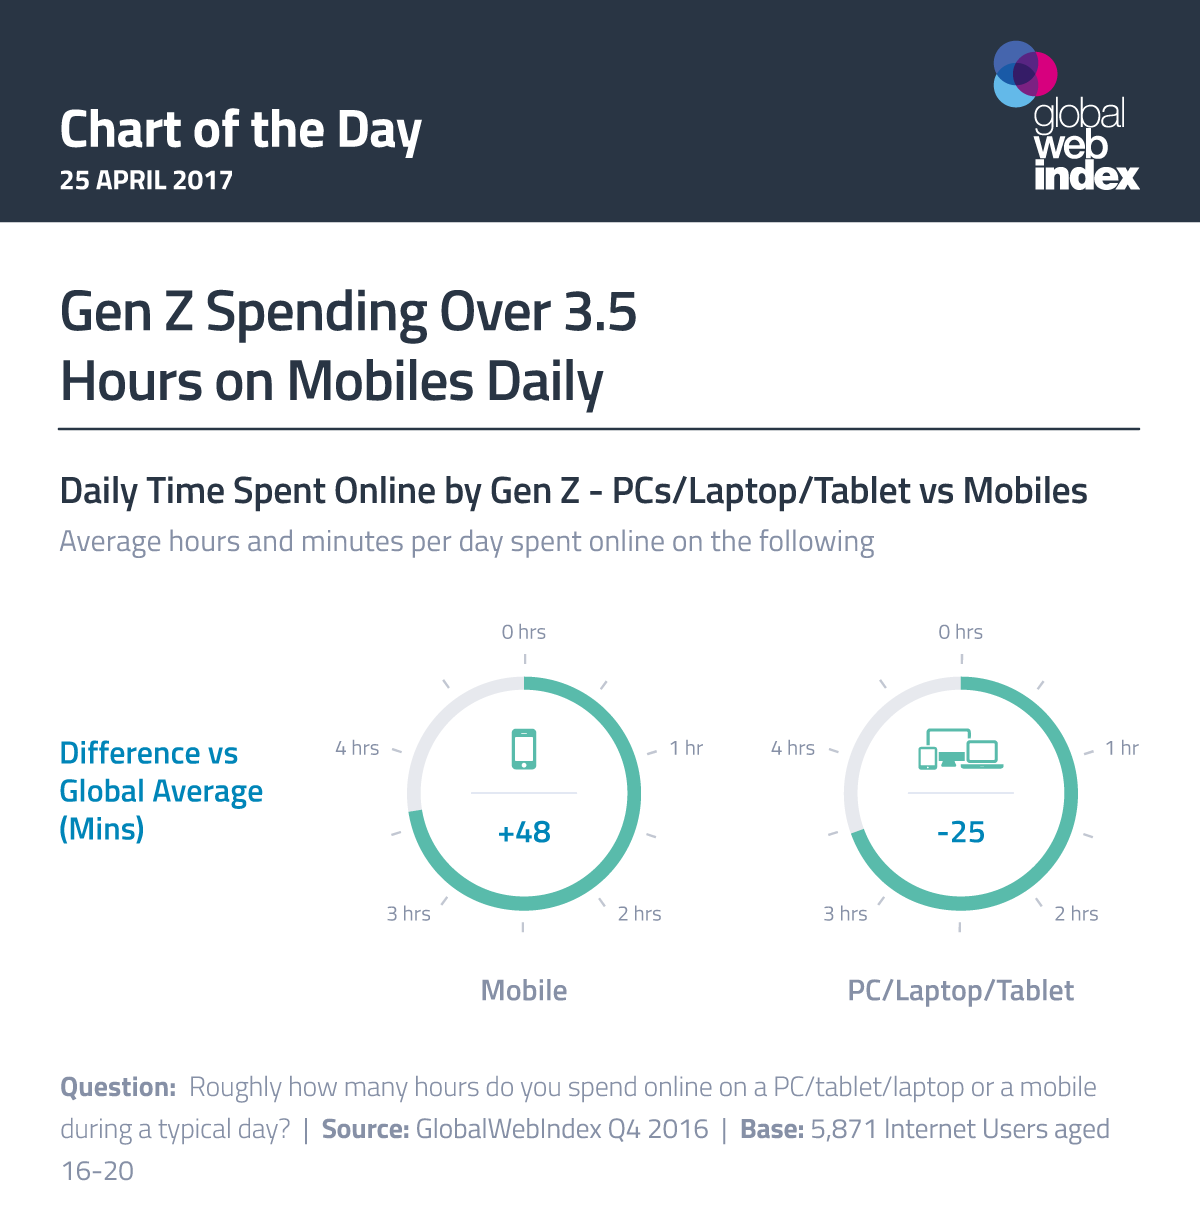 Gen Z Spending Over 3.5 Hours on Mobiles Daily